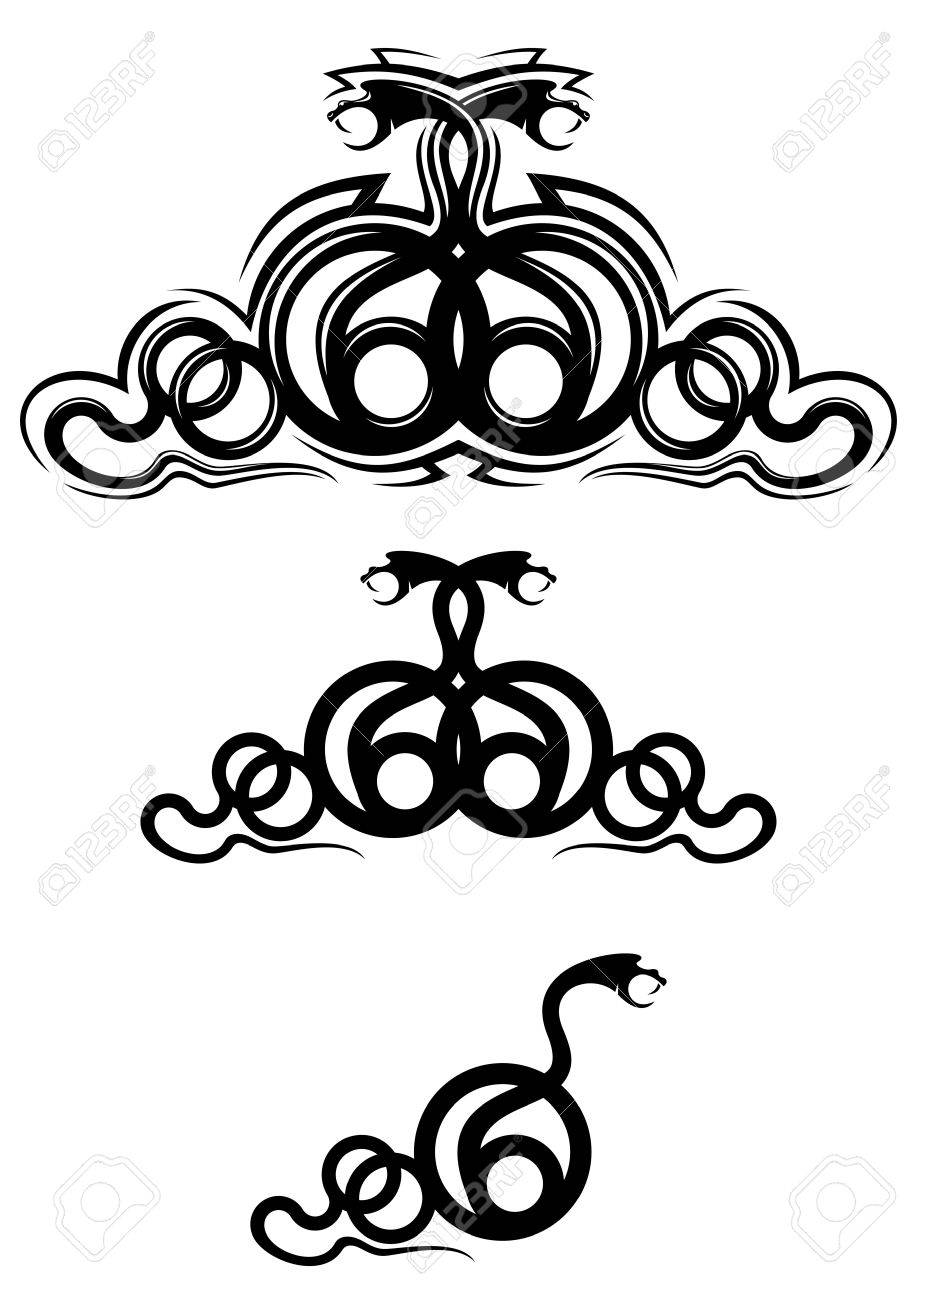 Frame Tattoo Designs With Isolated Snakes As Frame Or Tattoo Design Stock Vector 10942525 Snakes As Frame Or Tattoo Design Royalty Free Cliparts